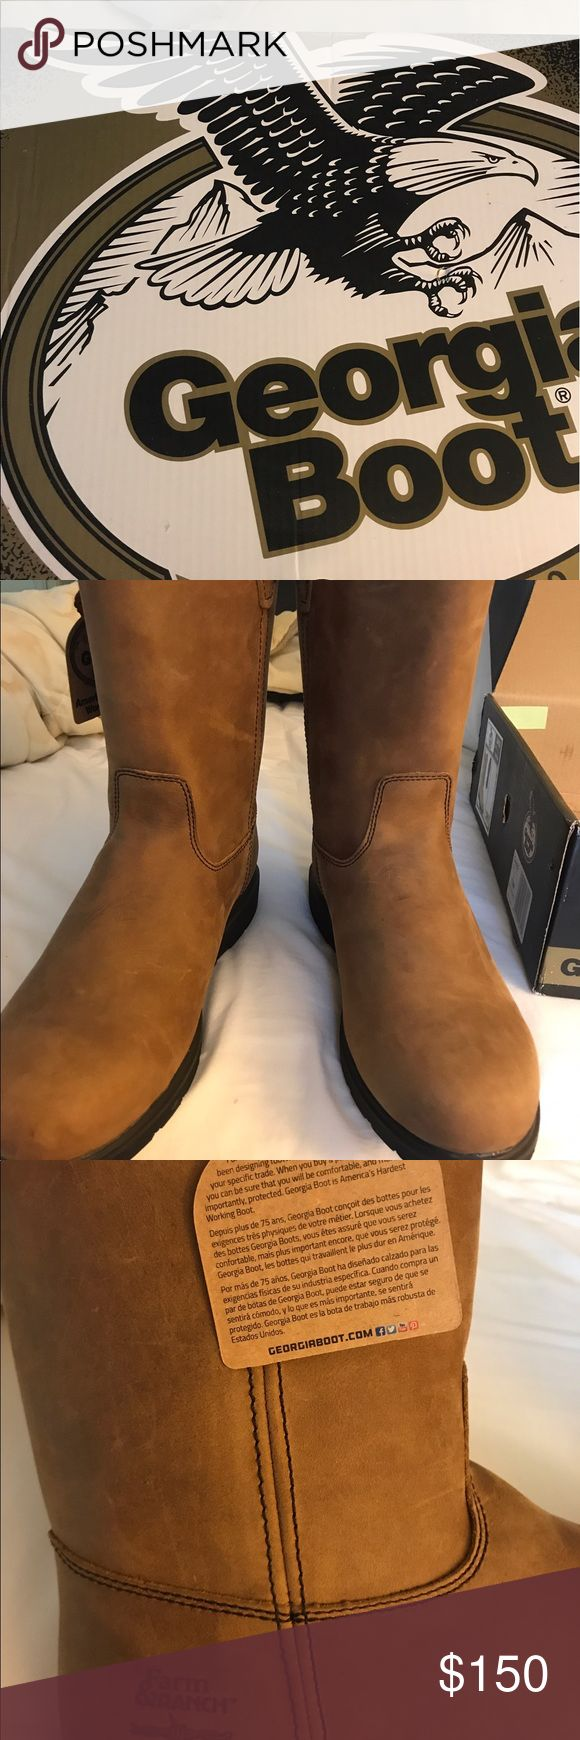 Georgia Boots for Men size 13 Brand new with tags and in box size 13 Georgia Boots for men. Worn once to try on. Georgia Boot Shoes Cowboy & Western Boots